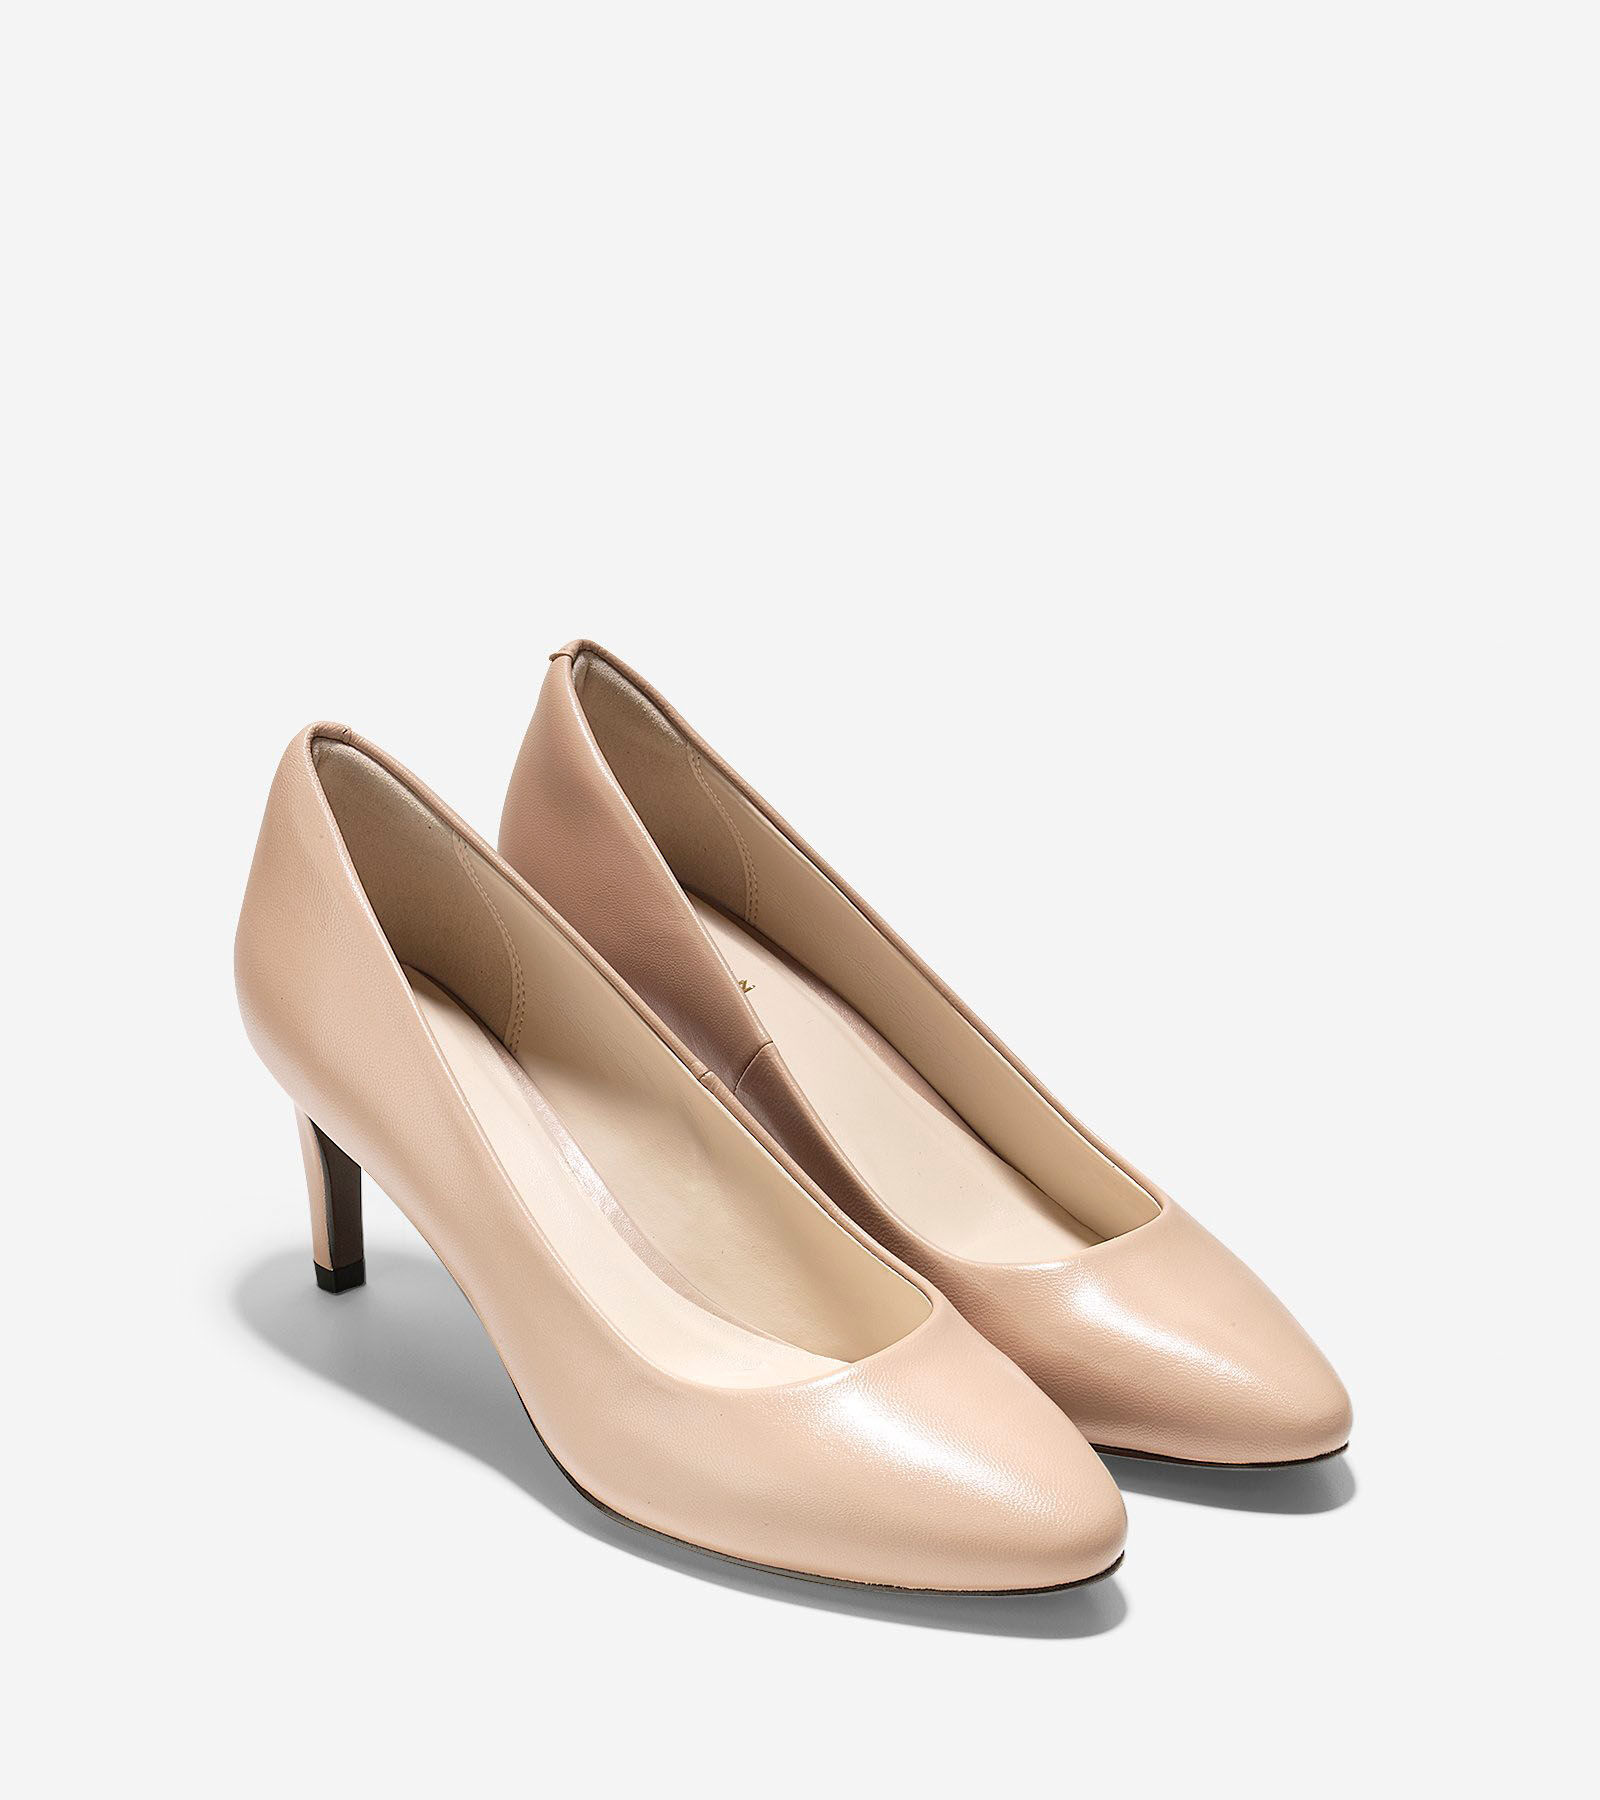 ... Hellen Grand Pump (65mm); Hellen Grand Pump (65mm). #colehaan